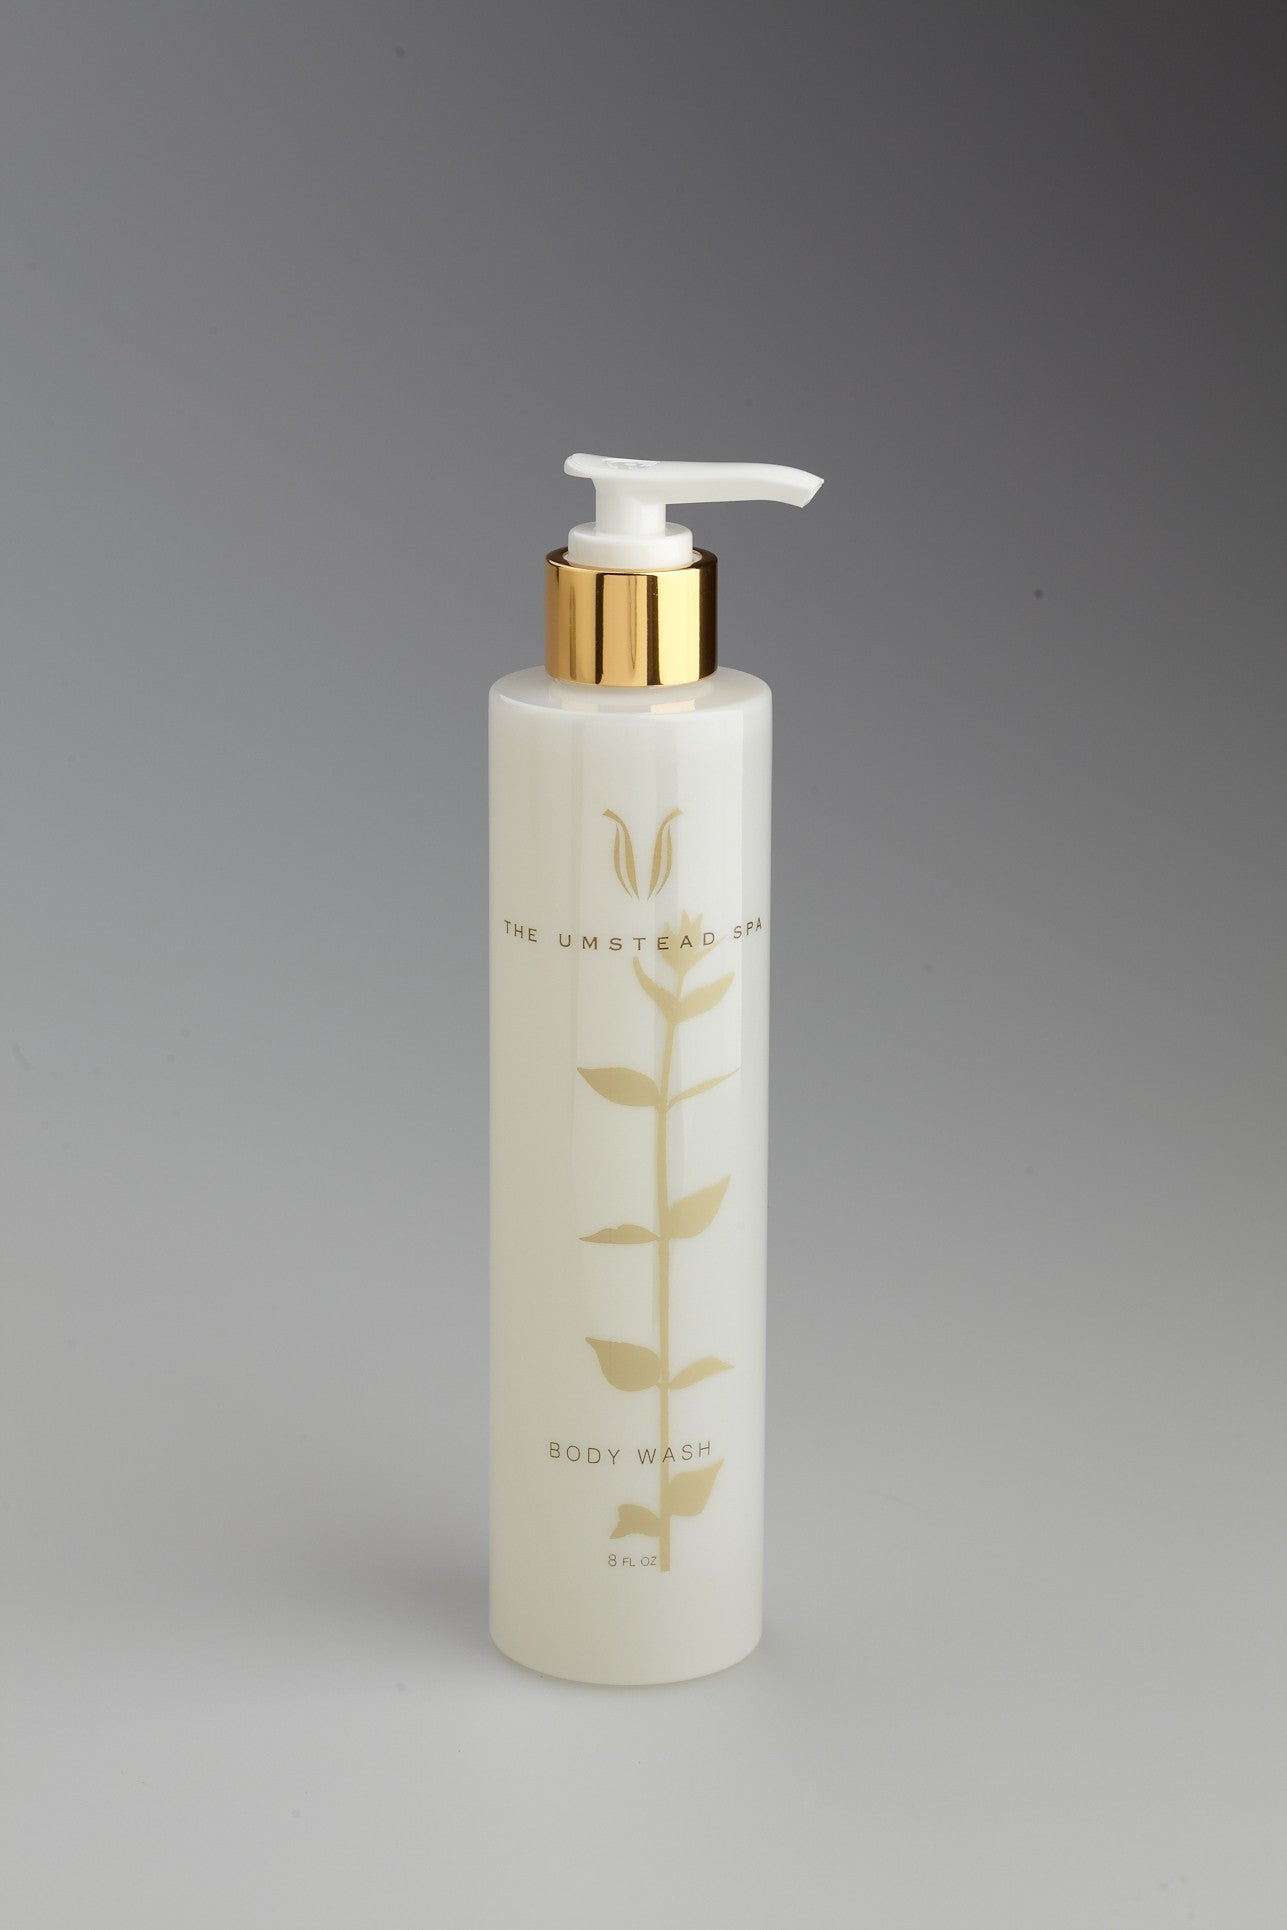 Umstead Signature Body Wash